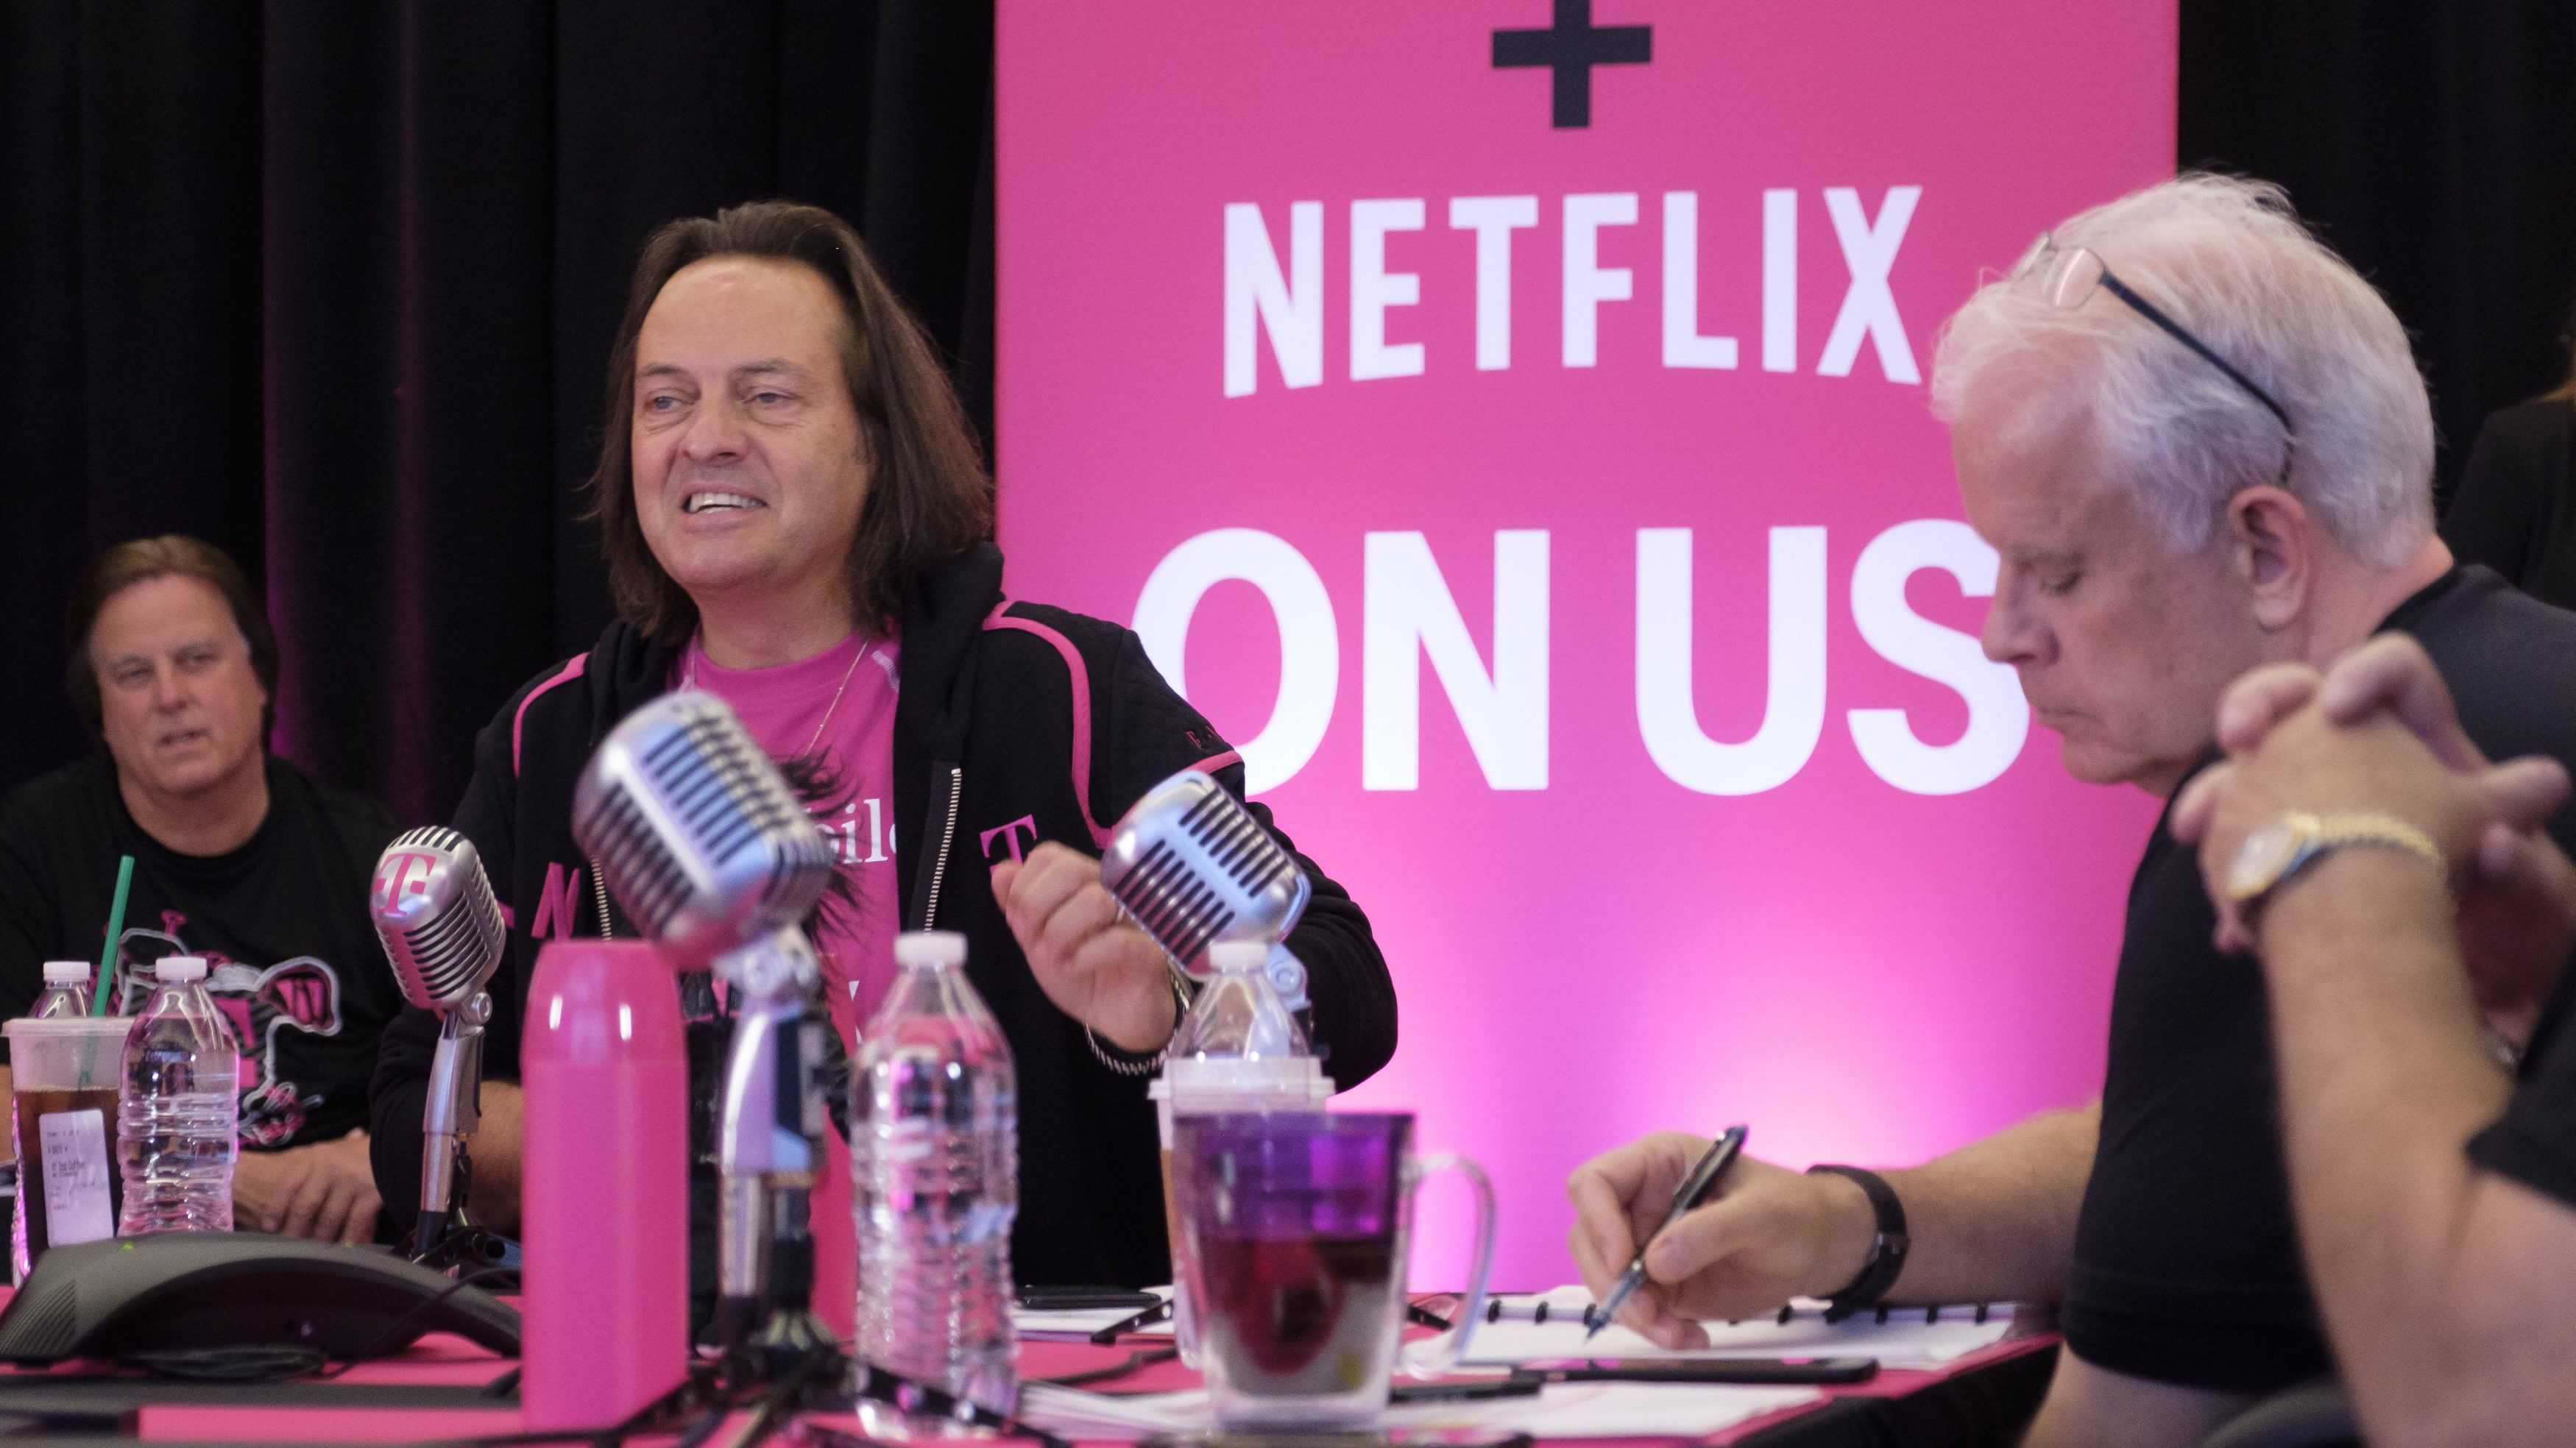 IMAGE DISTRIBUTED FOR T-MOBILE - T-Mobile President and CEO John Legere, second, from left, speaks during the T-Mobile Netflix On Us Un-Carrier event on Wednesday, Sept. 6, 2017 in Bellevue, Wash. T-Mobile announced Netflix now comes free with T-Mobile ONE family plans. At right is T-Mobile Chief Technology Officer Neville Ray. (Stephen Brashear/AP Images for T-Mobile)